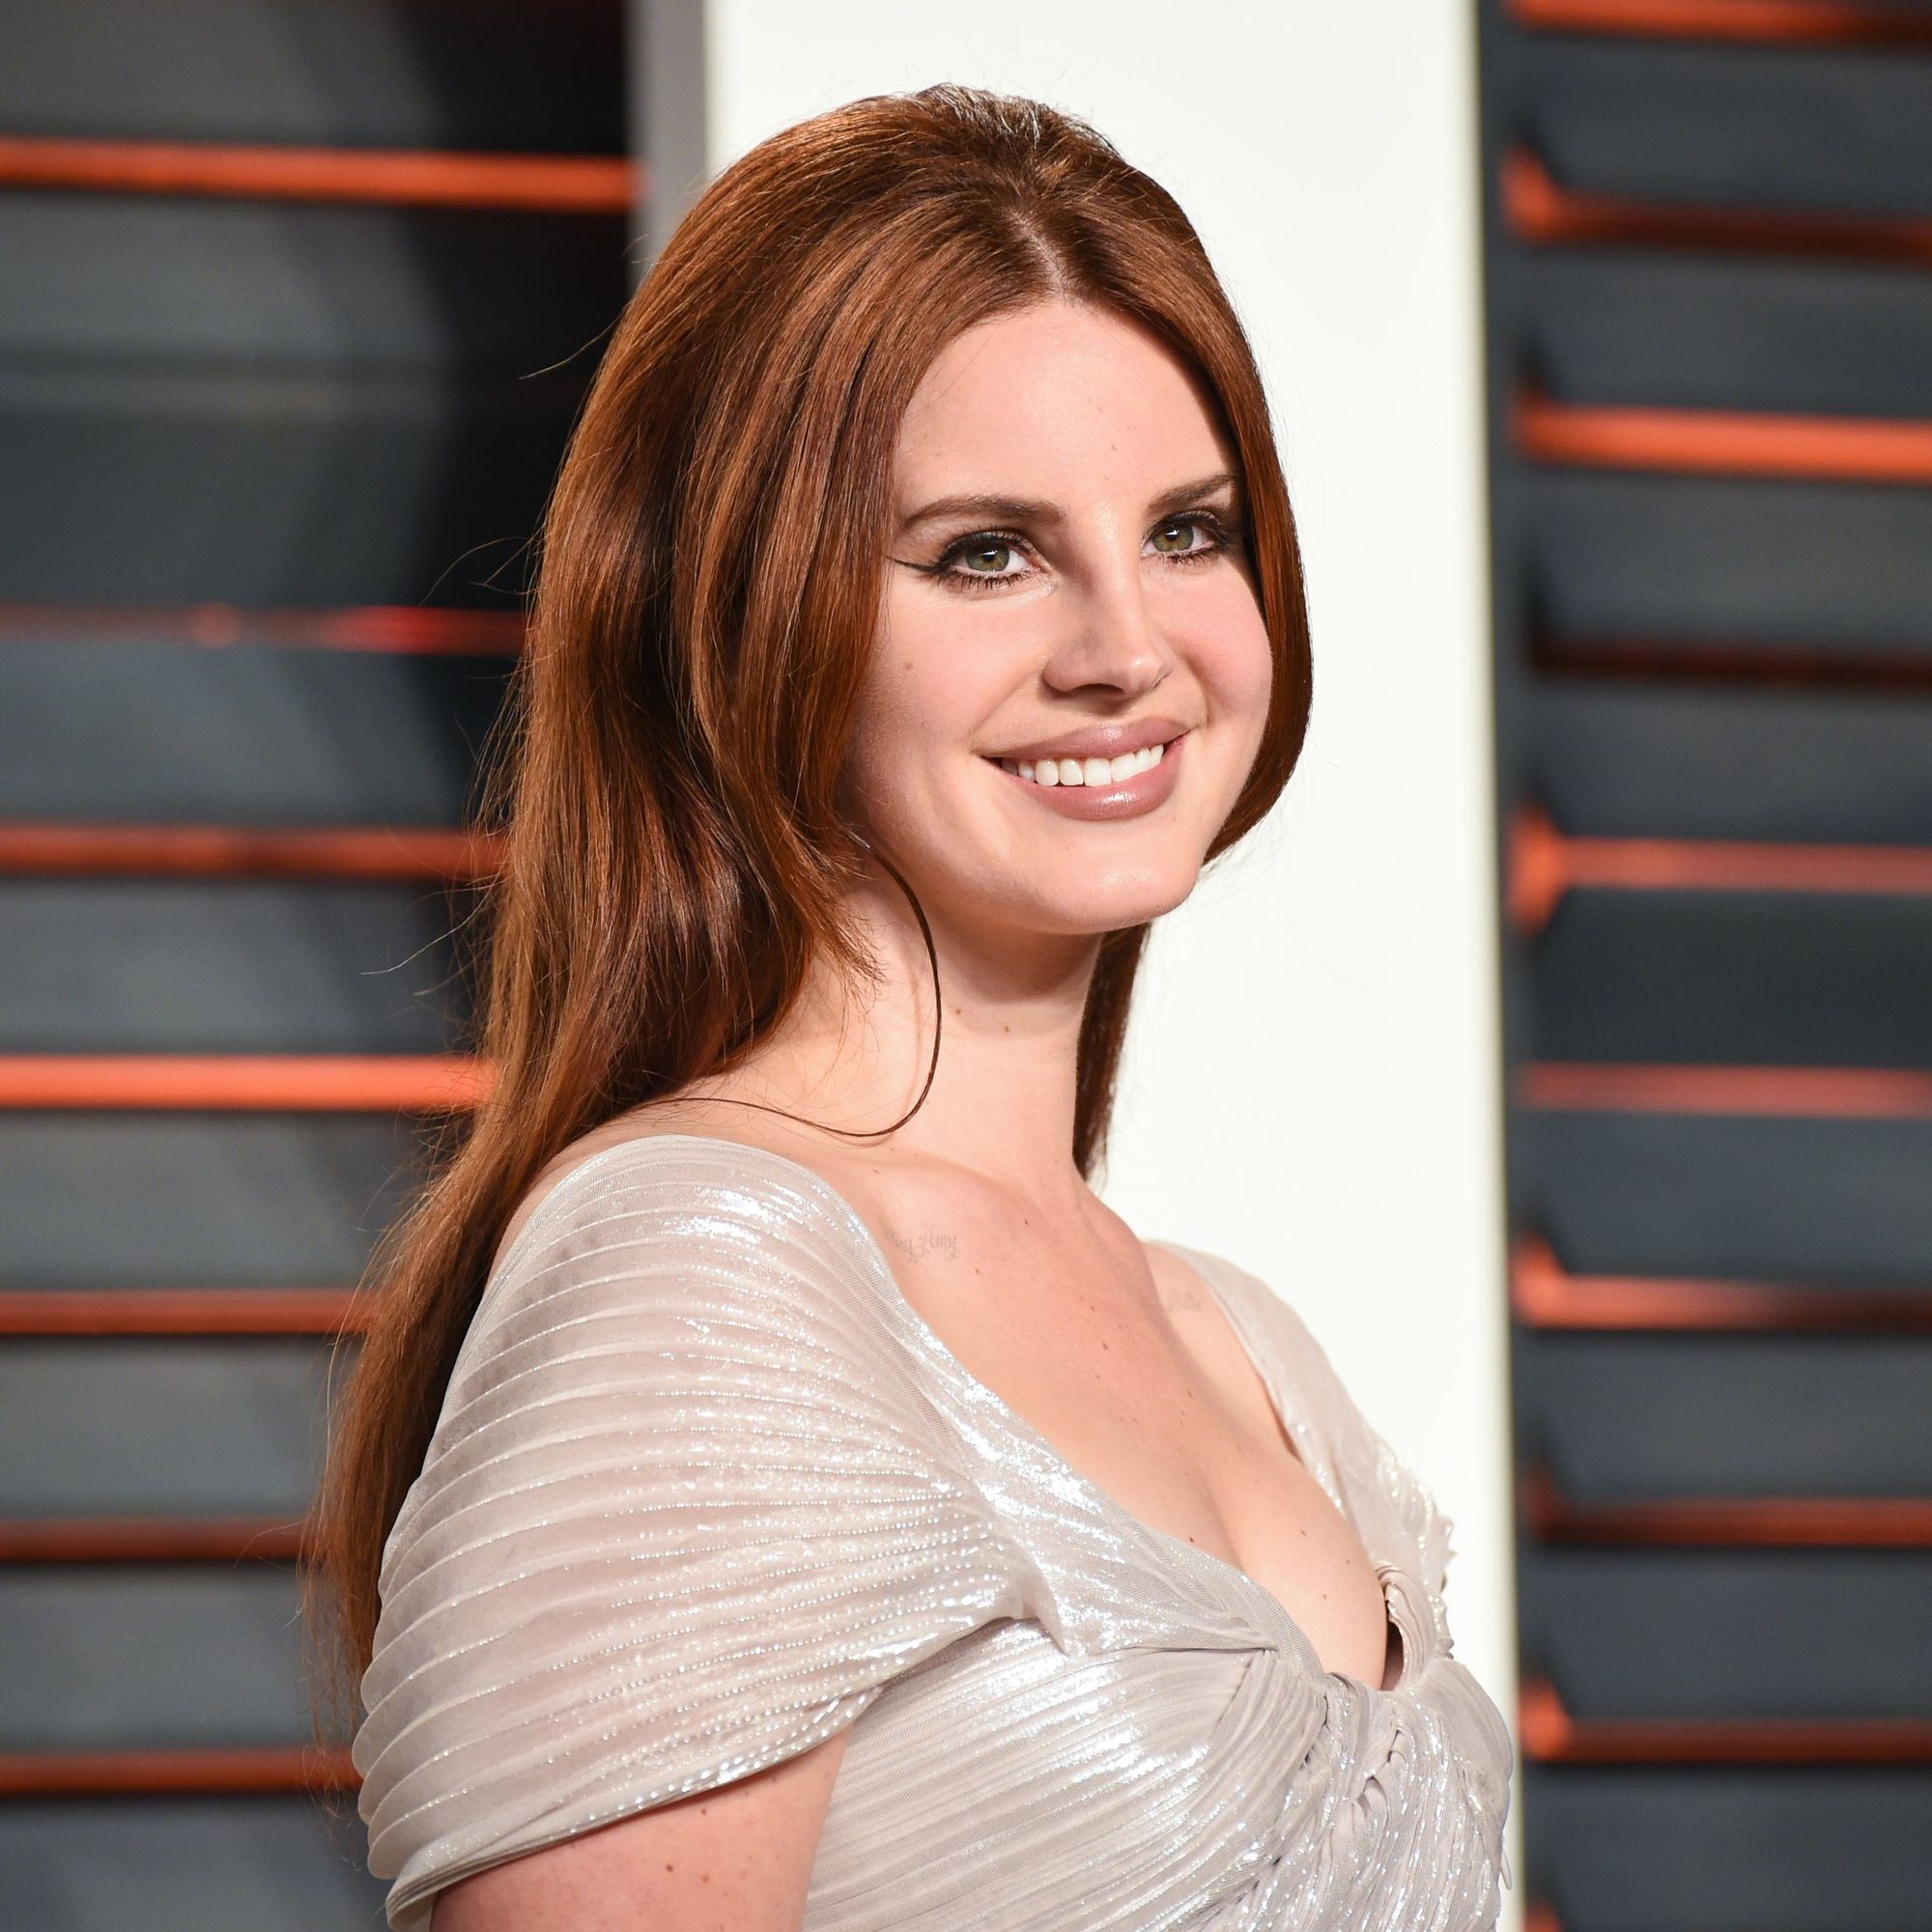 singer lana del rey on the red carpet with fiery auburn hair in a half up bouffant